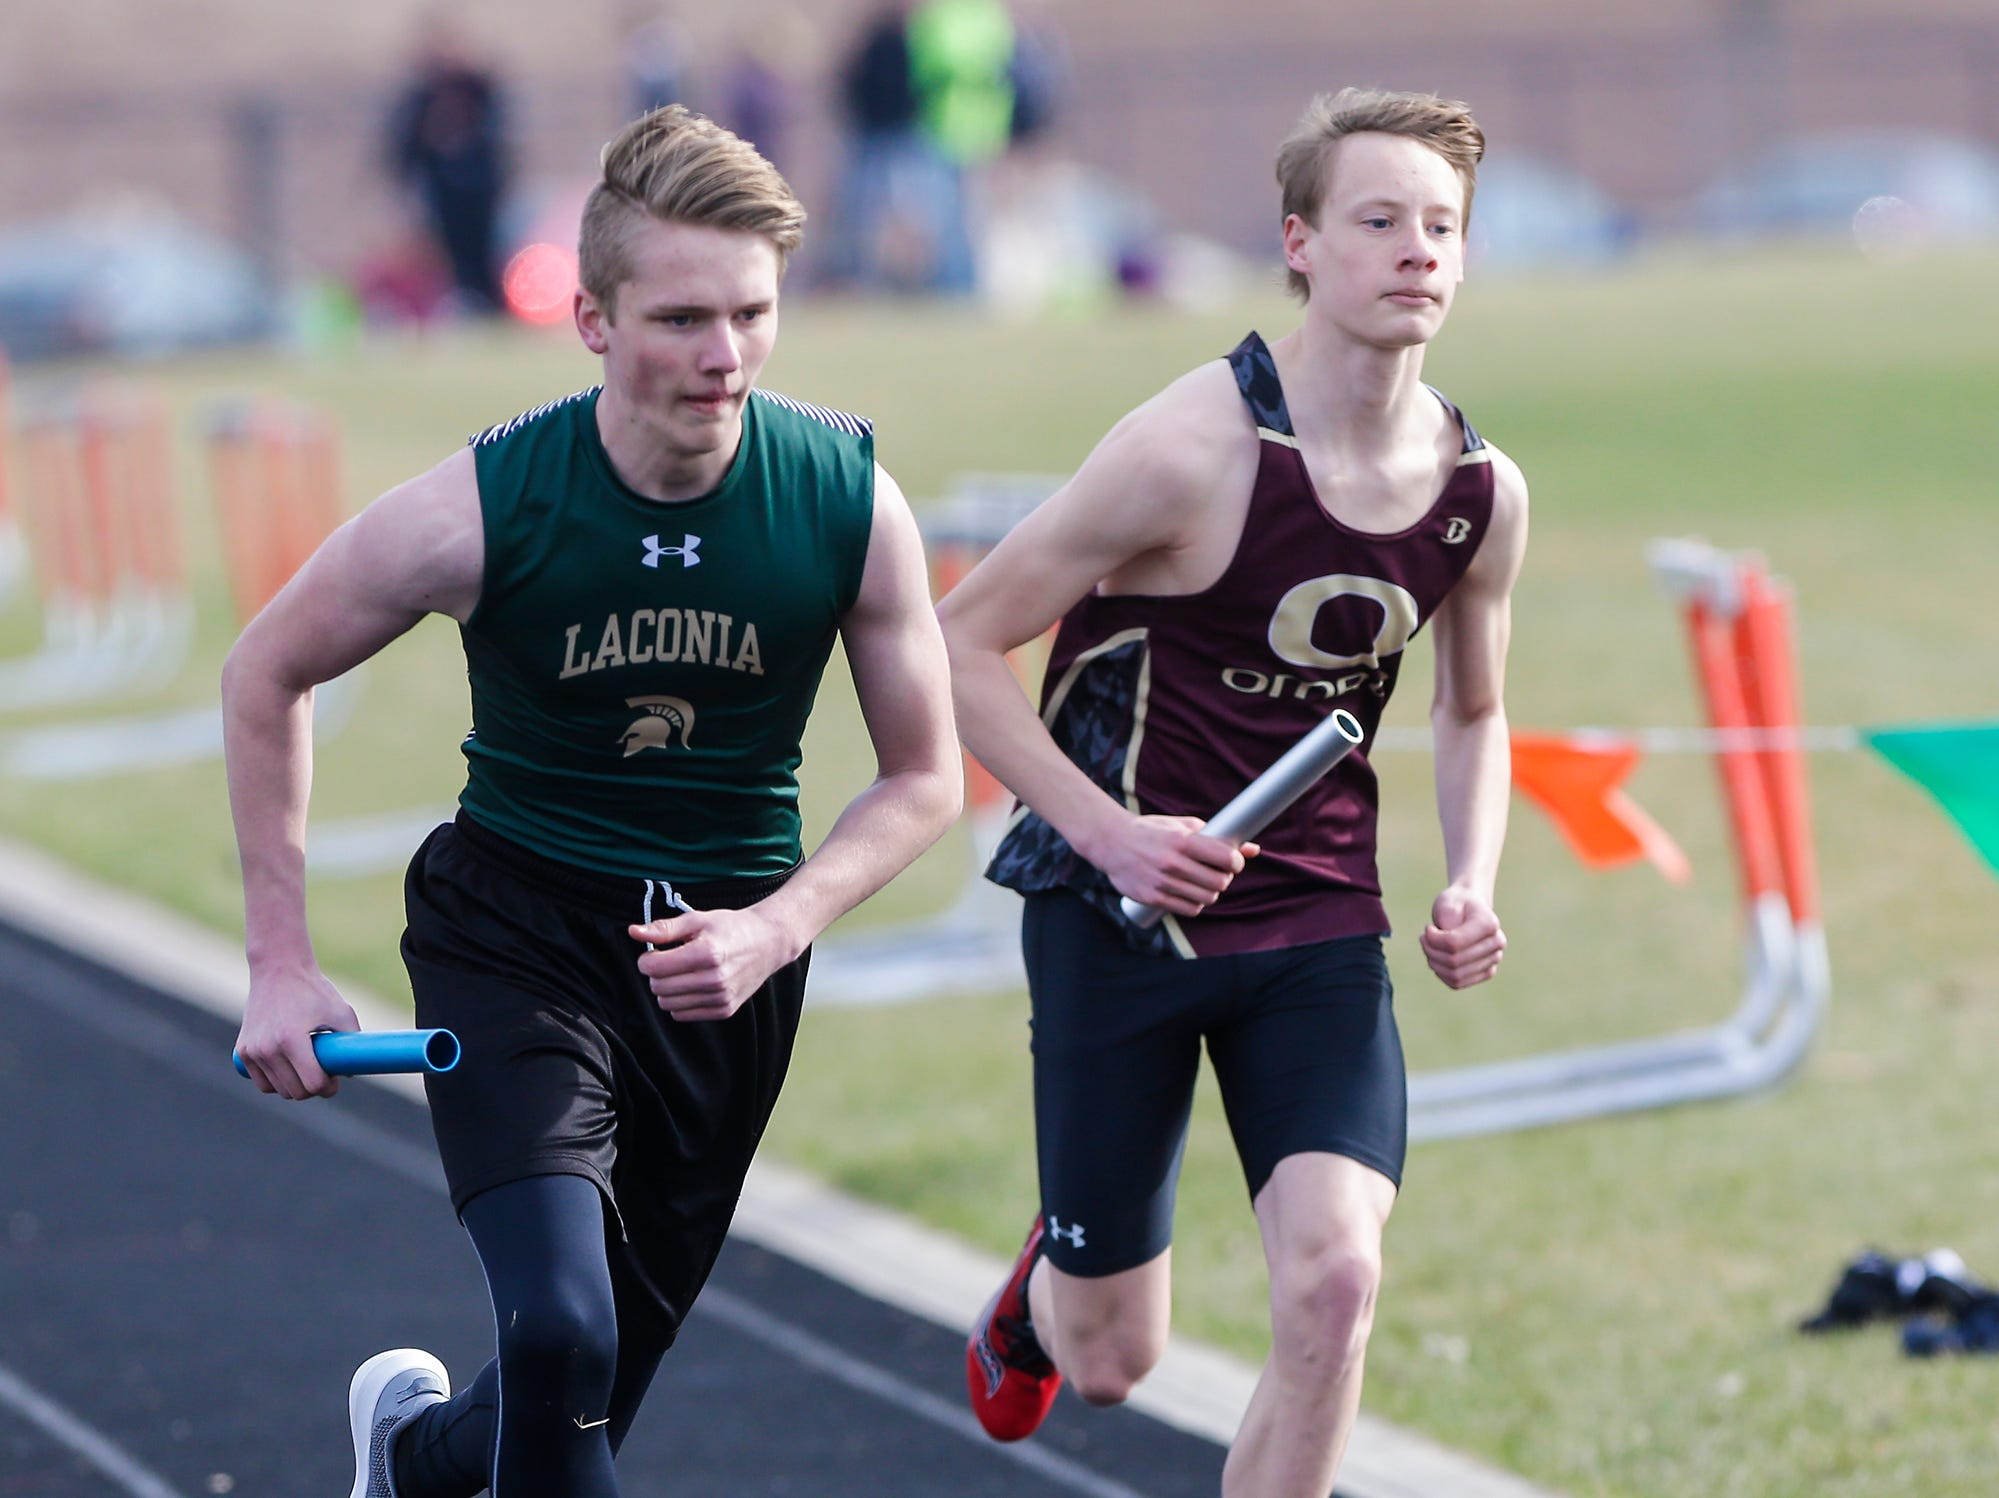 Laconia High School's Derek Stahmann and Omro's Hunter Crowley take part in the boys 4x800 meter relay Tuesday, April 16, 2019 at North Fond du Lac High School in North Fond du Lac, Wis. Doug Raflik/USA TODAY NETWORK-Wisconsin